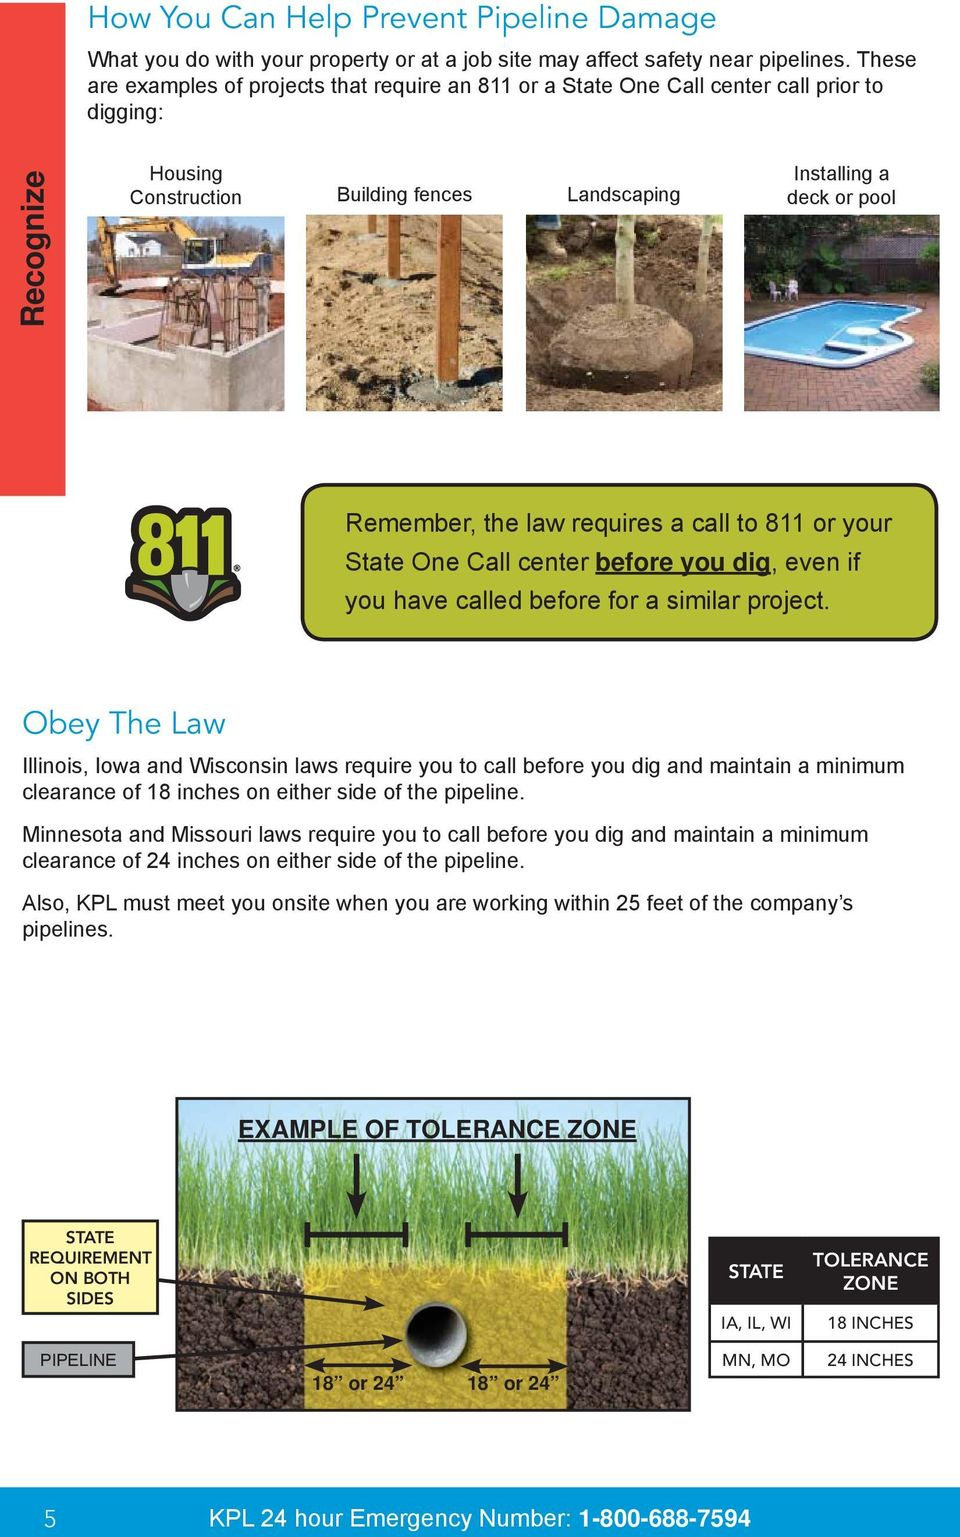 law requires a call to 811 or your State One Call center before you dig, even if you have called before for a similar project.